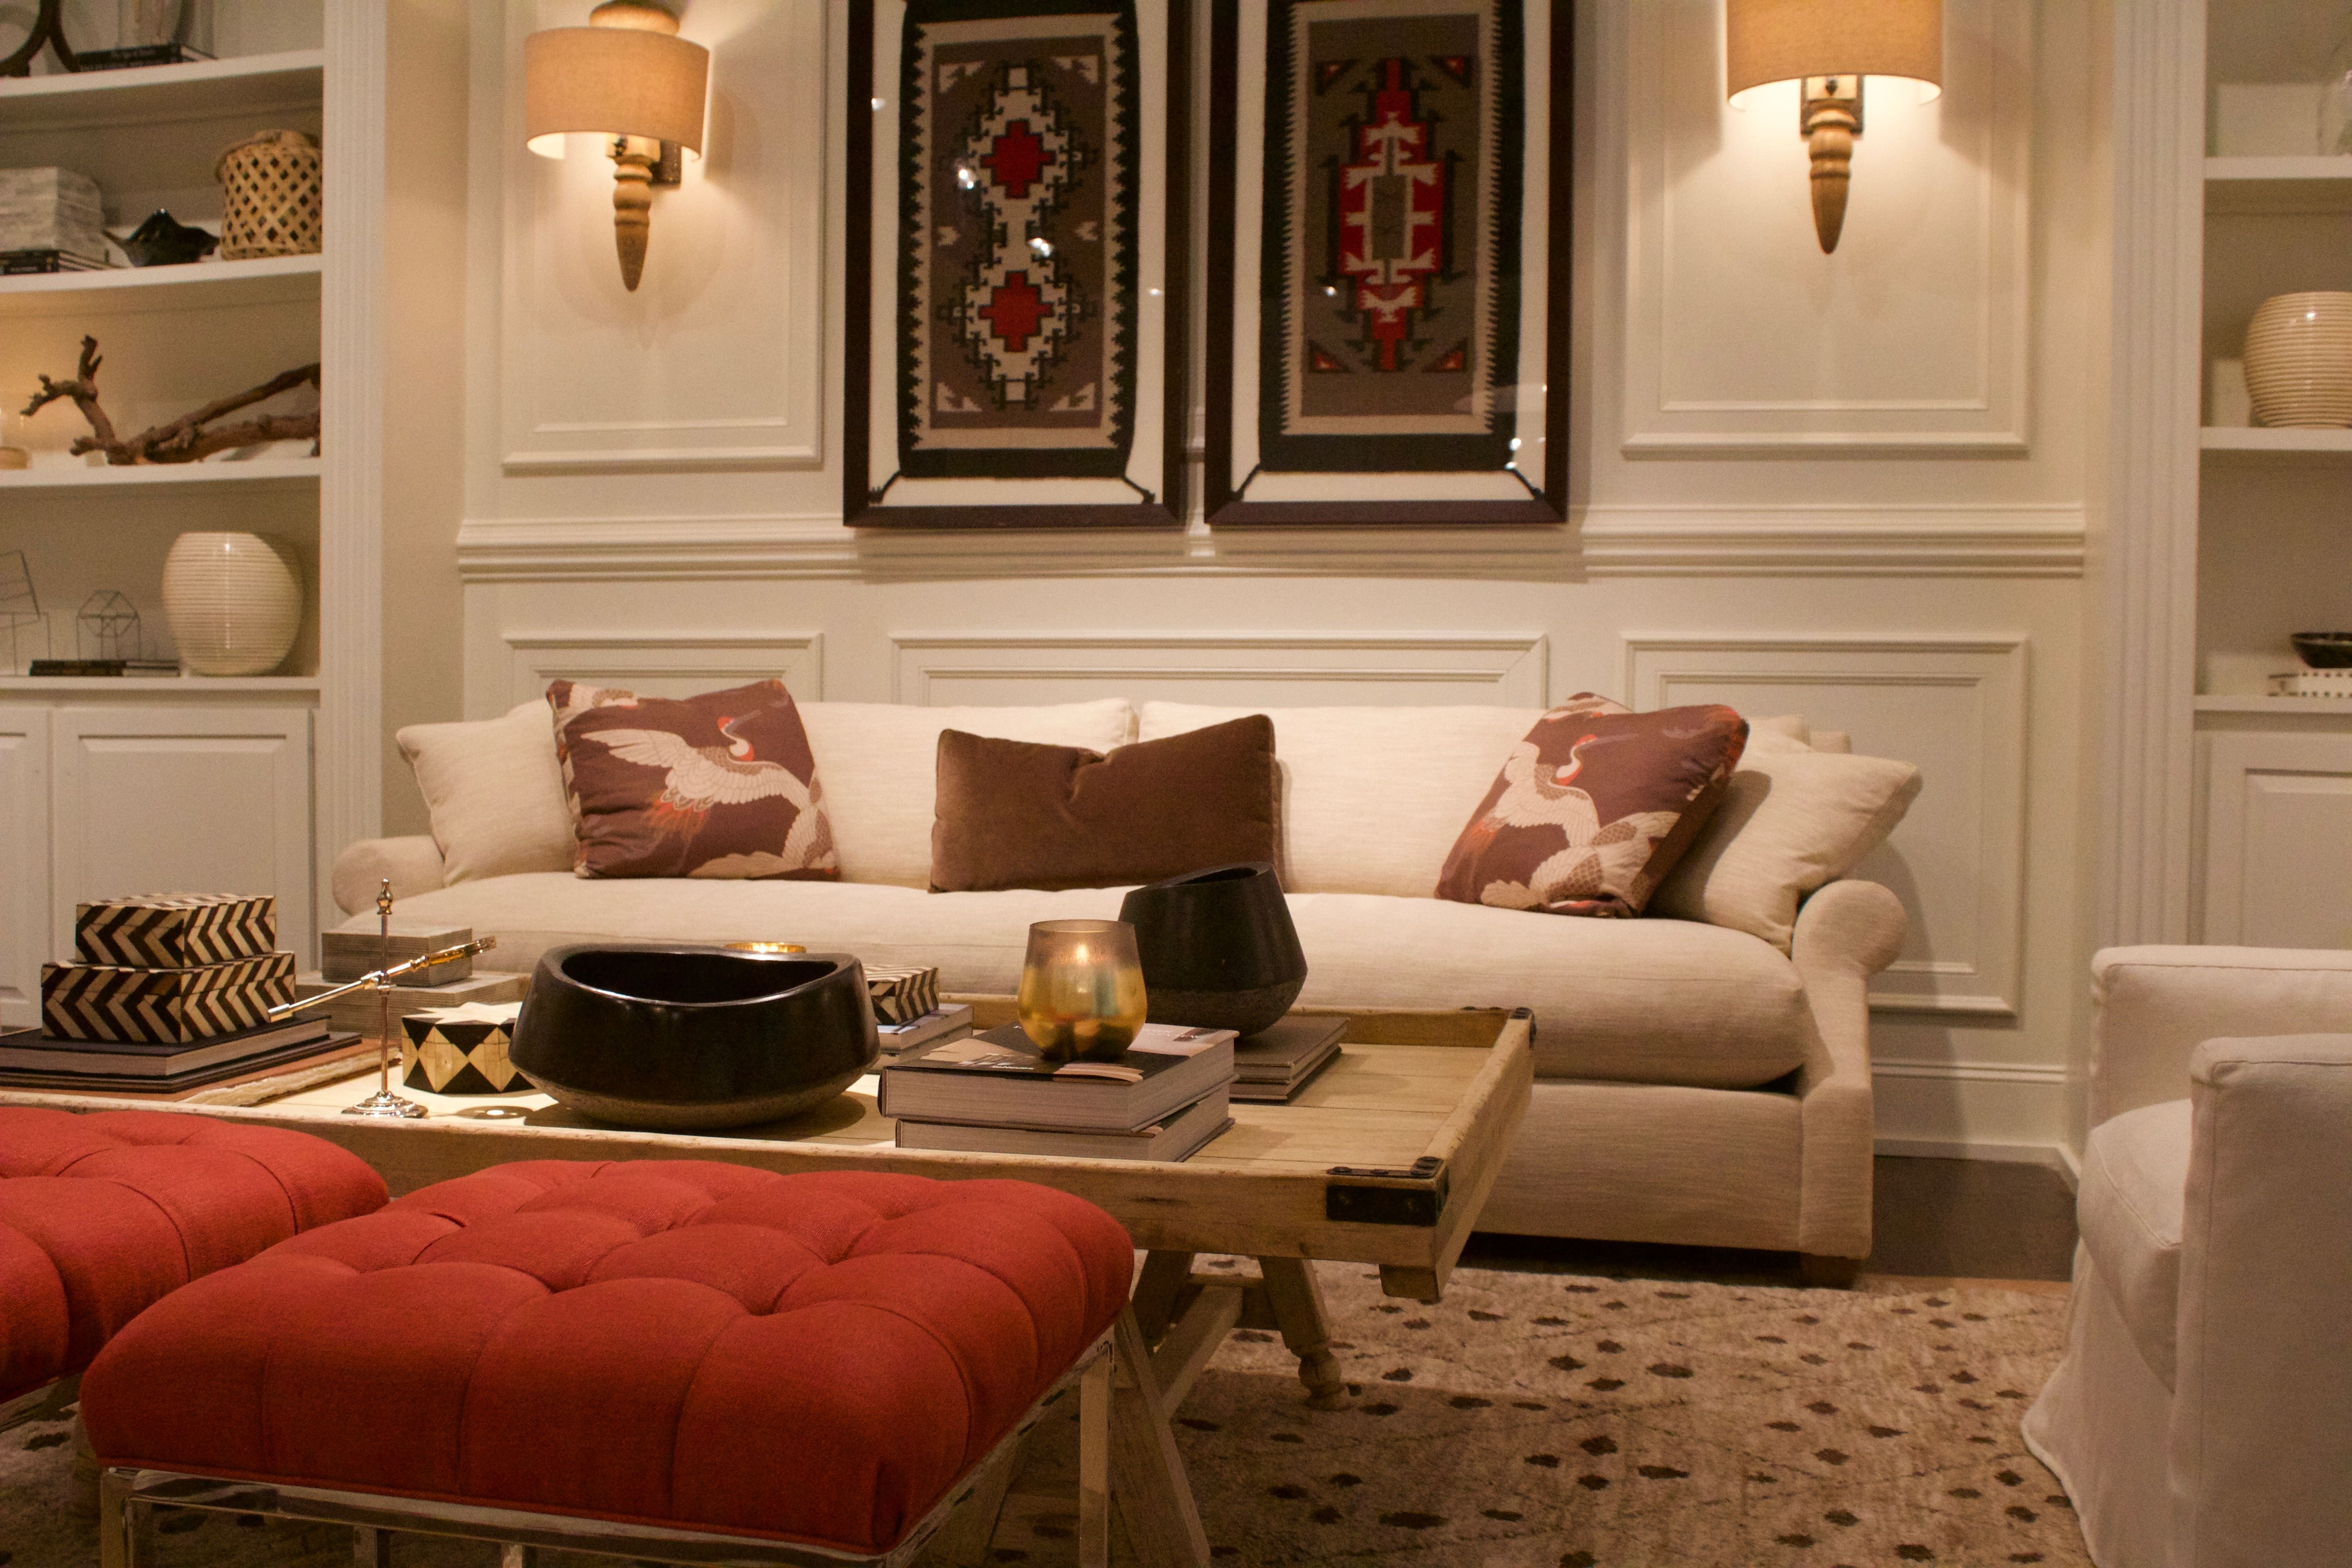 Home Design Trends 2019 Part - 46: Hottest Interior Design Trends For 2018 And 2019